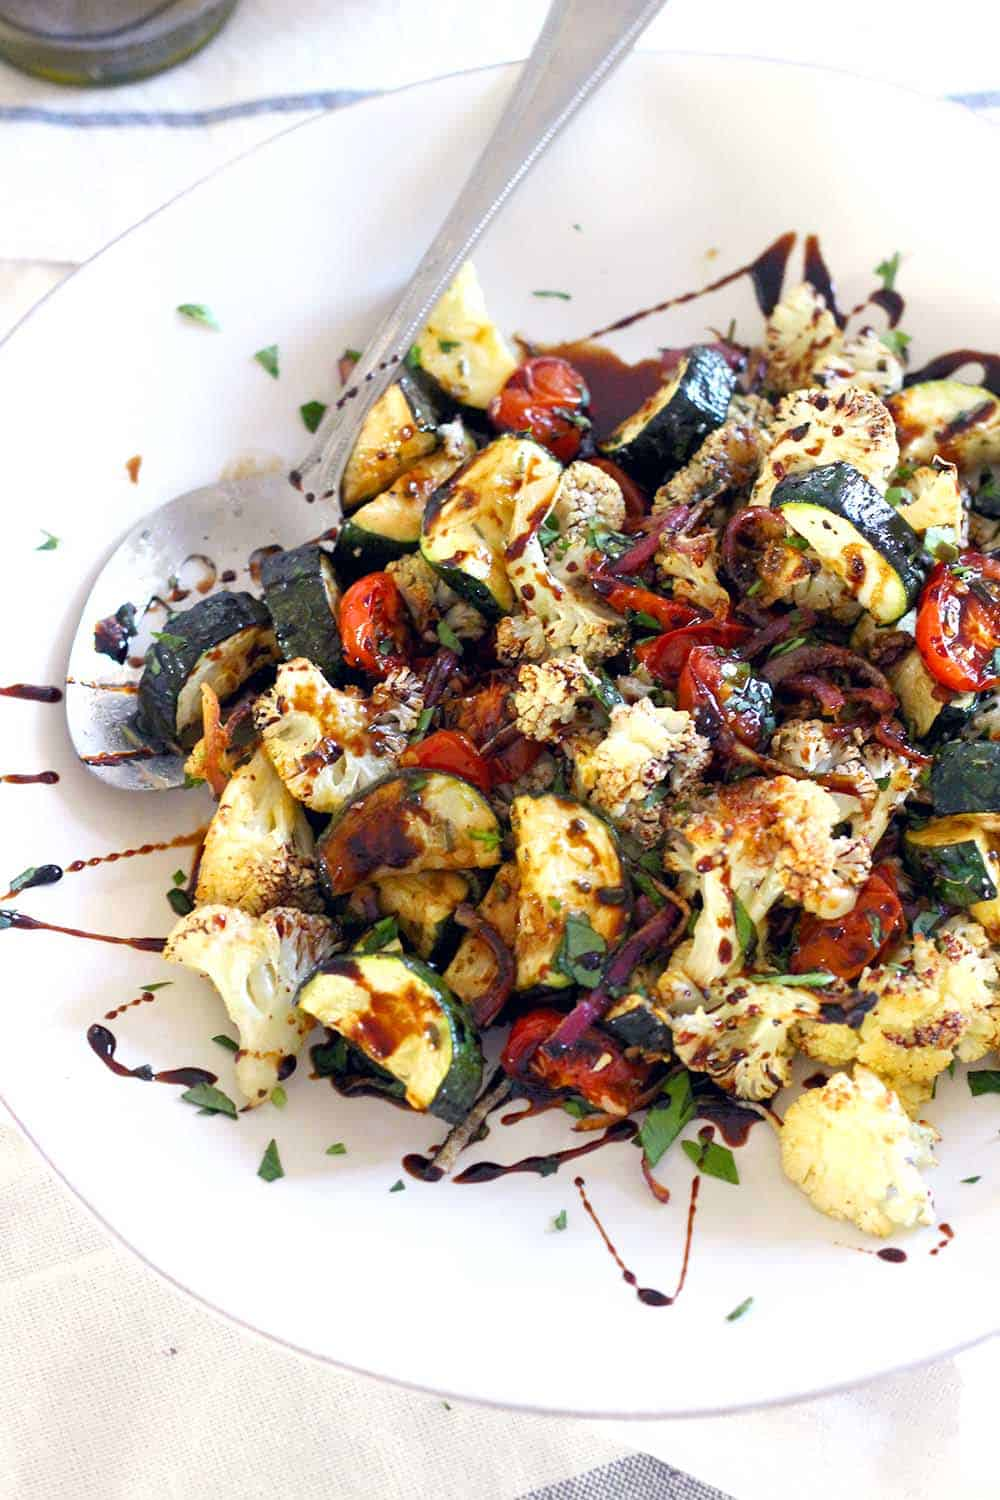 Herb Roasted Vegetables with Balsamic Reduction is the perfect healthy side recipe- they're low carb, paleo/whole30, and bursting with delicious savory, sweet, and tangy flavor!